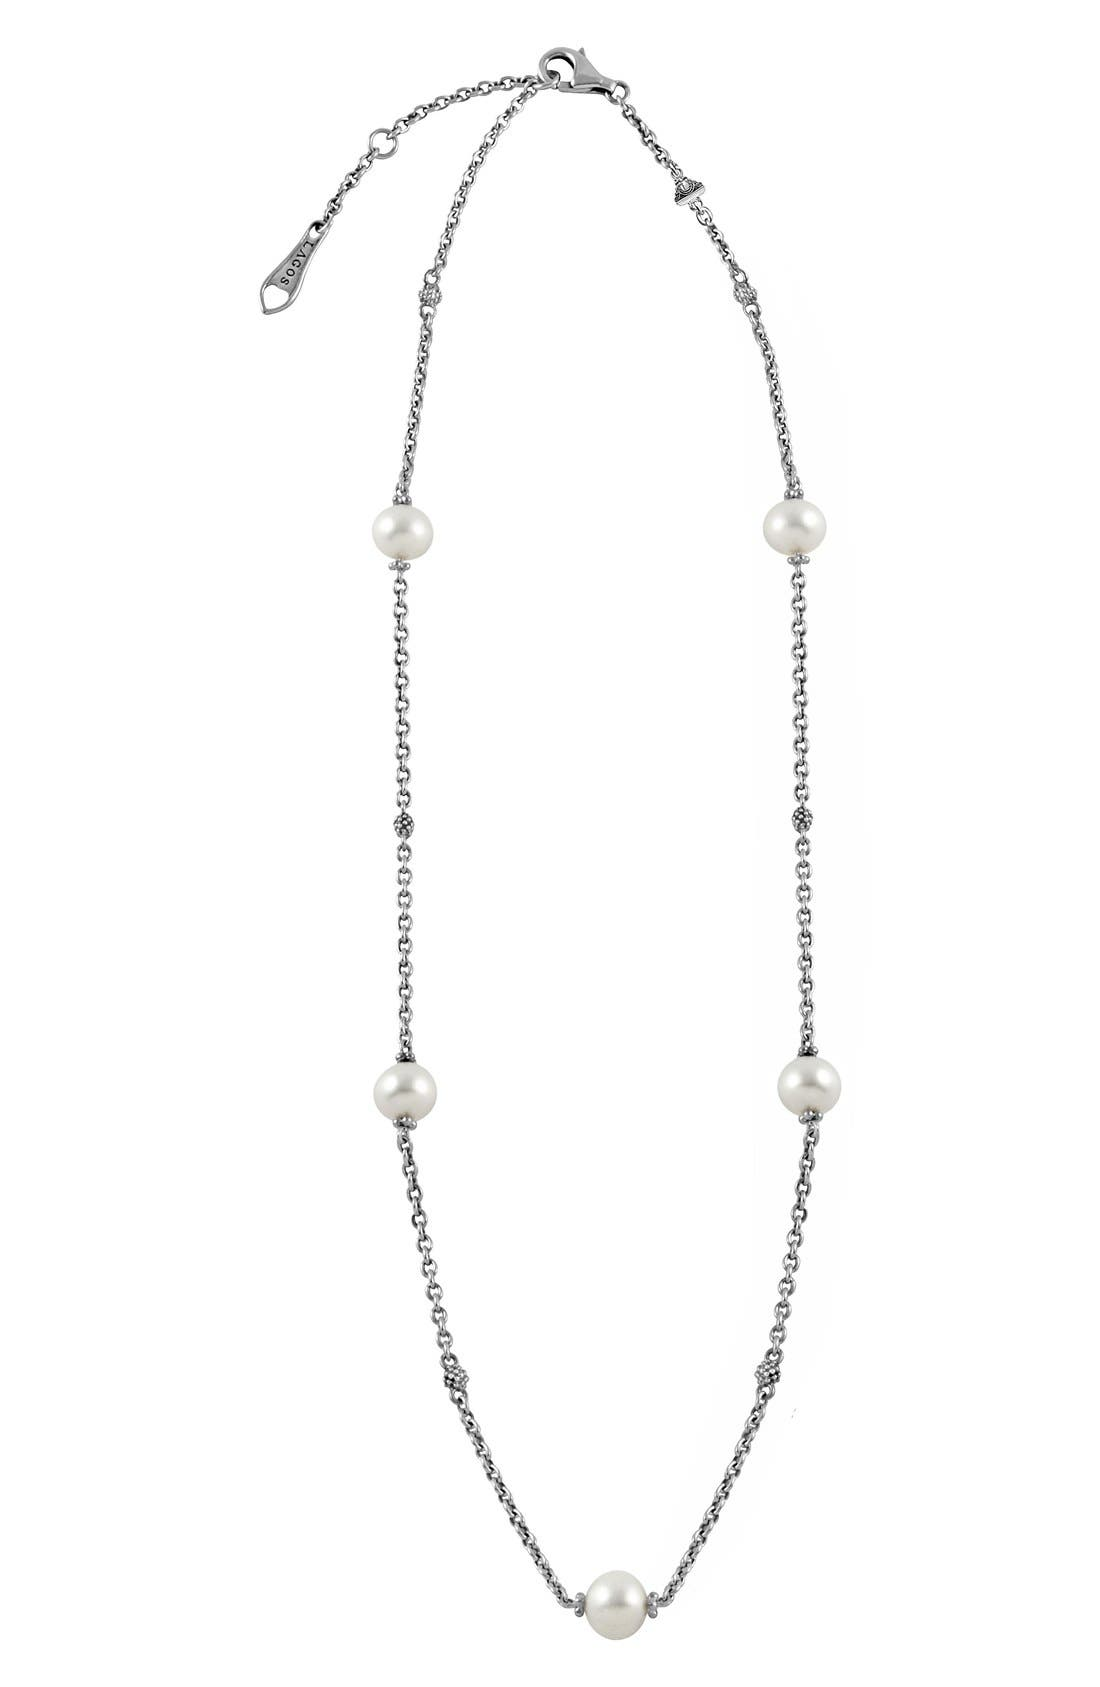 LAGOS 'Luna' Pearl Station Necklace